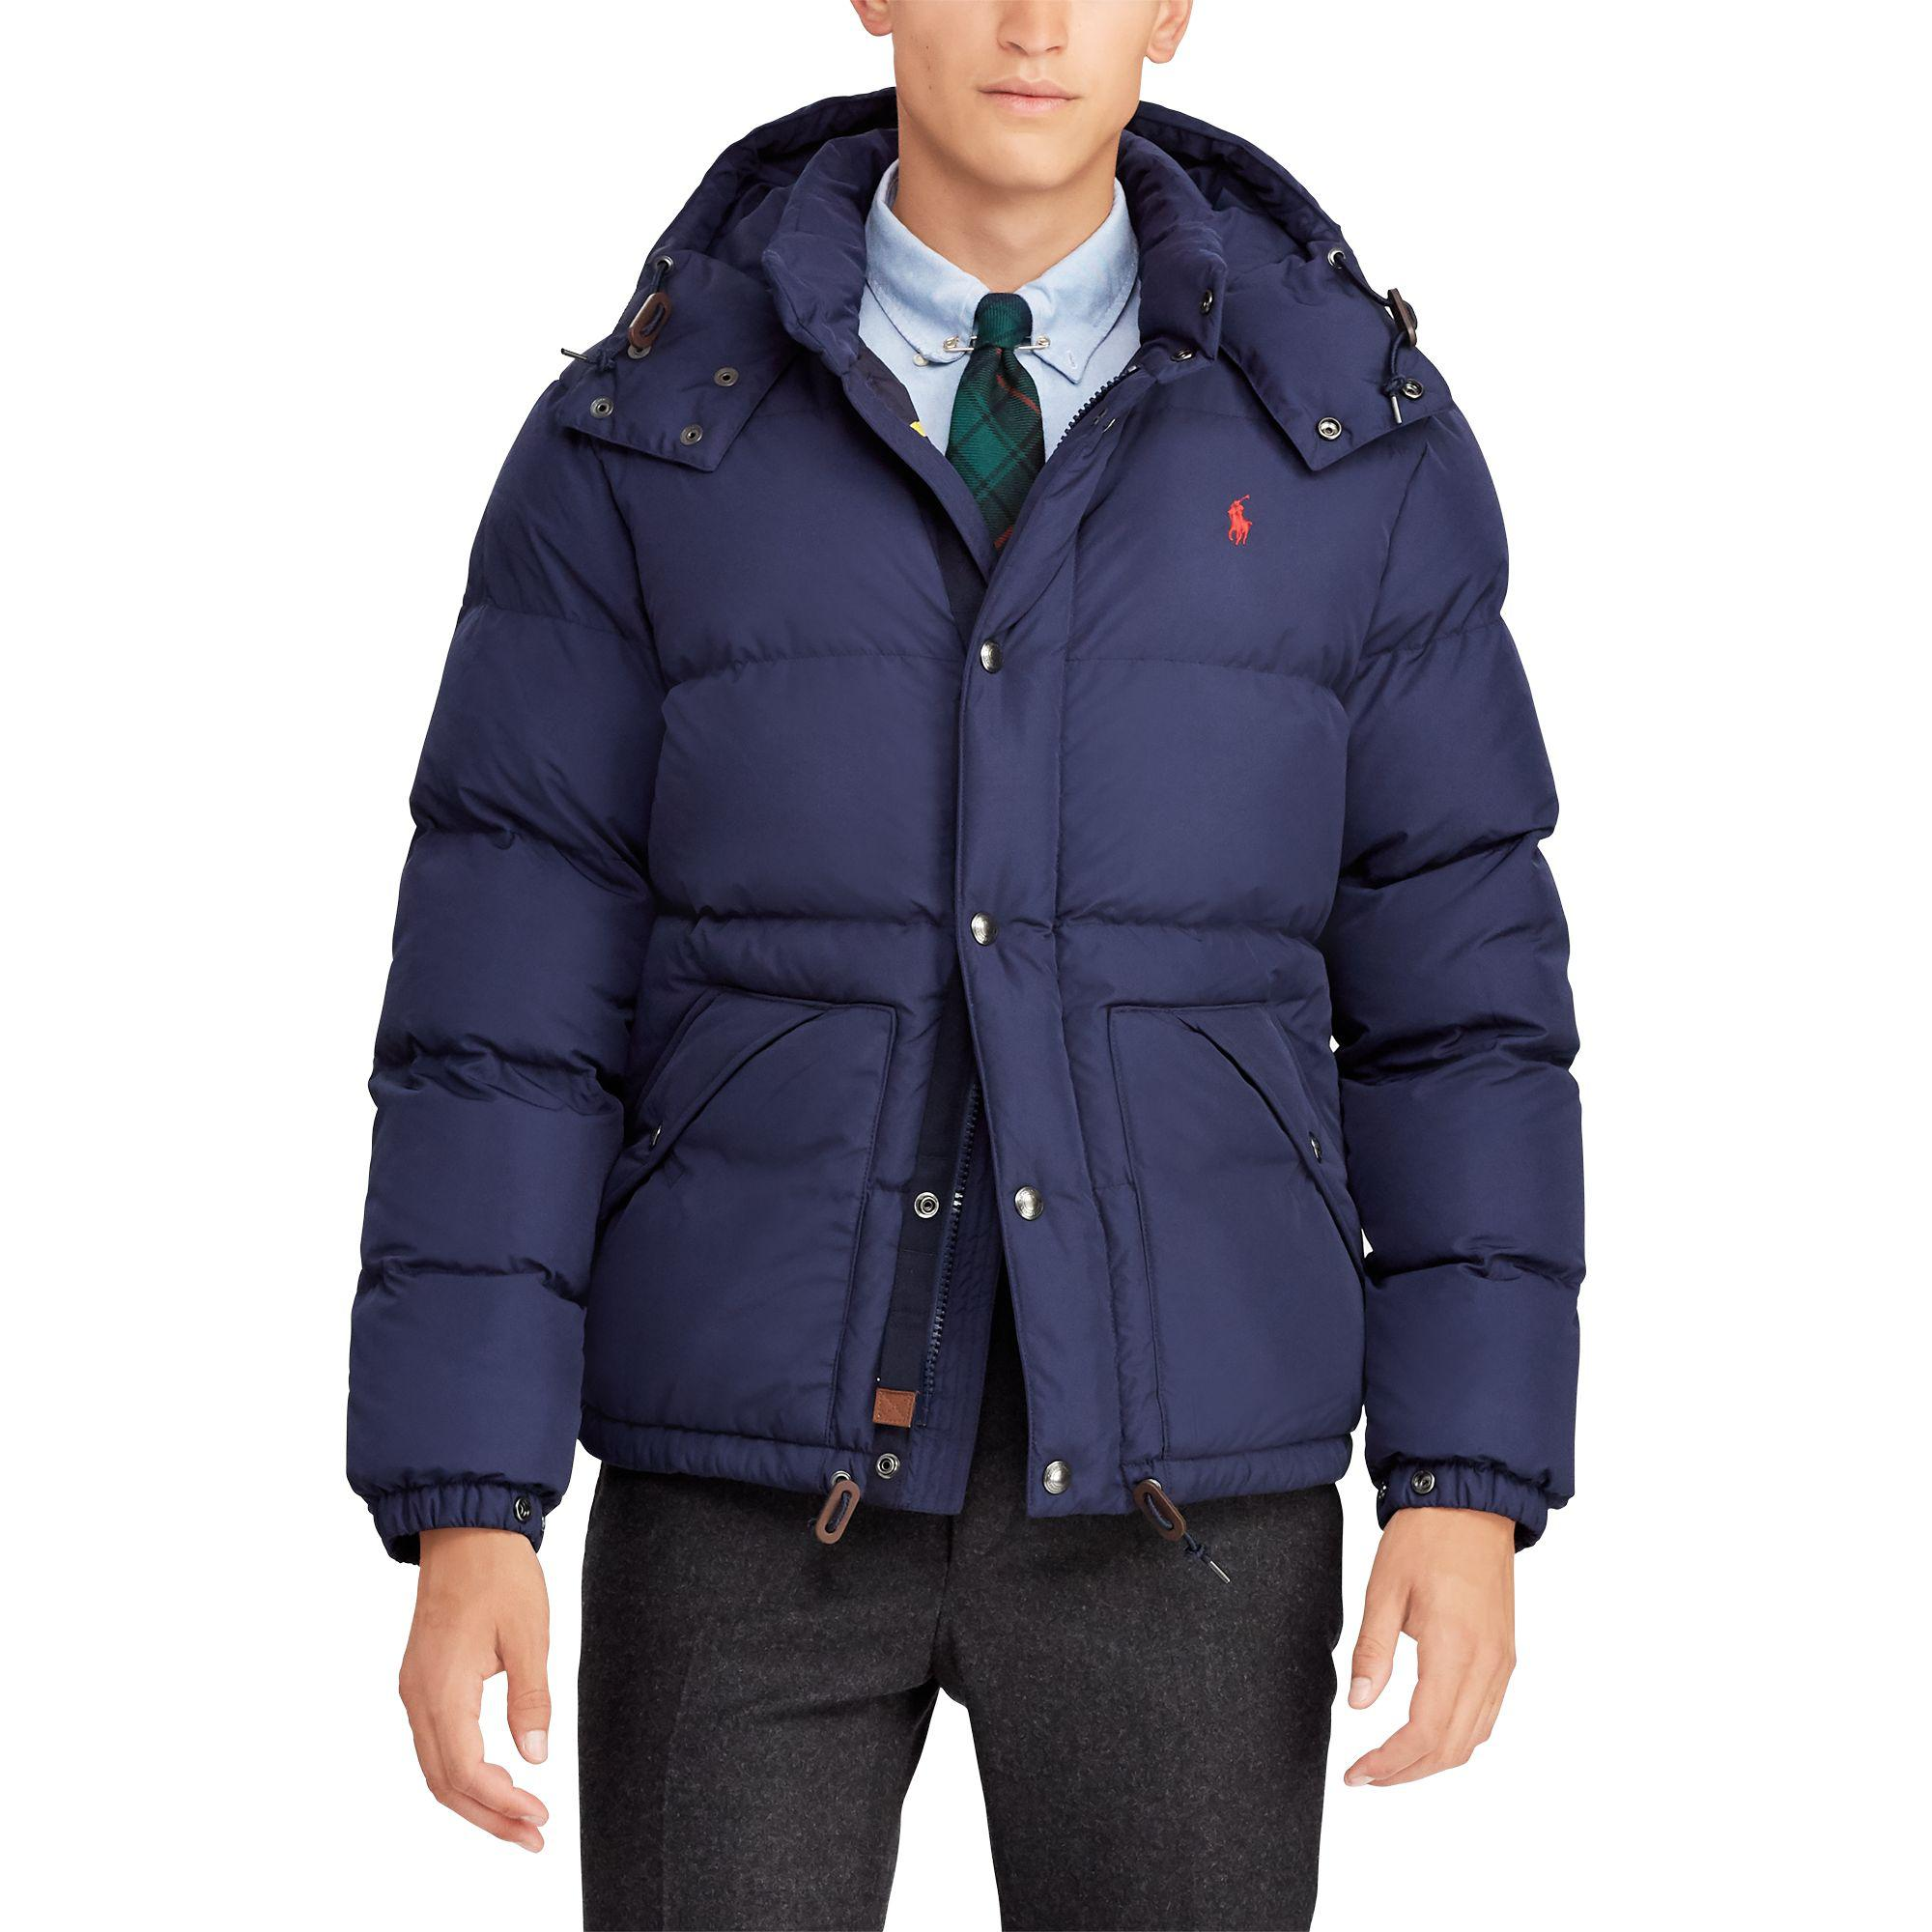 Polo Ralph Lauren Water-repellent Down Jacket in Blue for Men - Lyst 360a32facf75